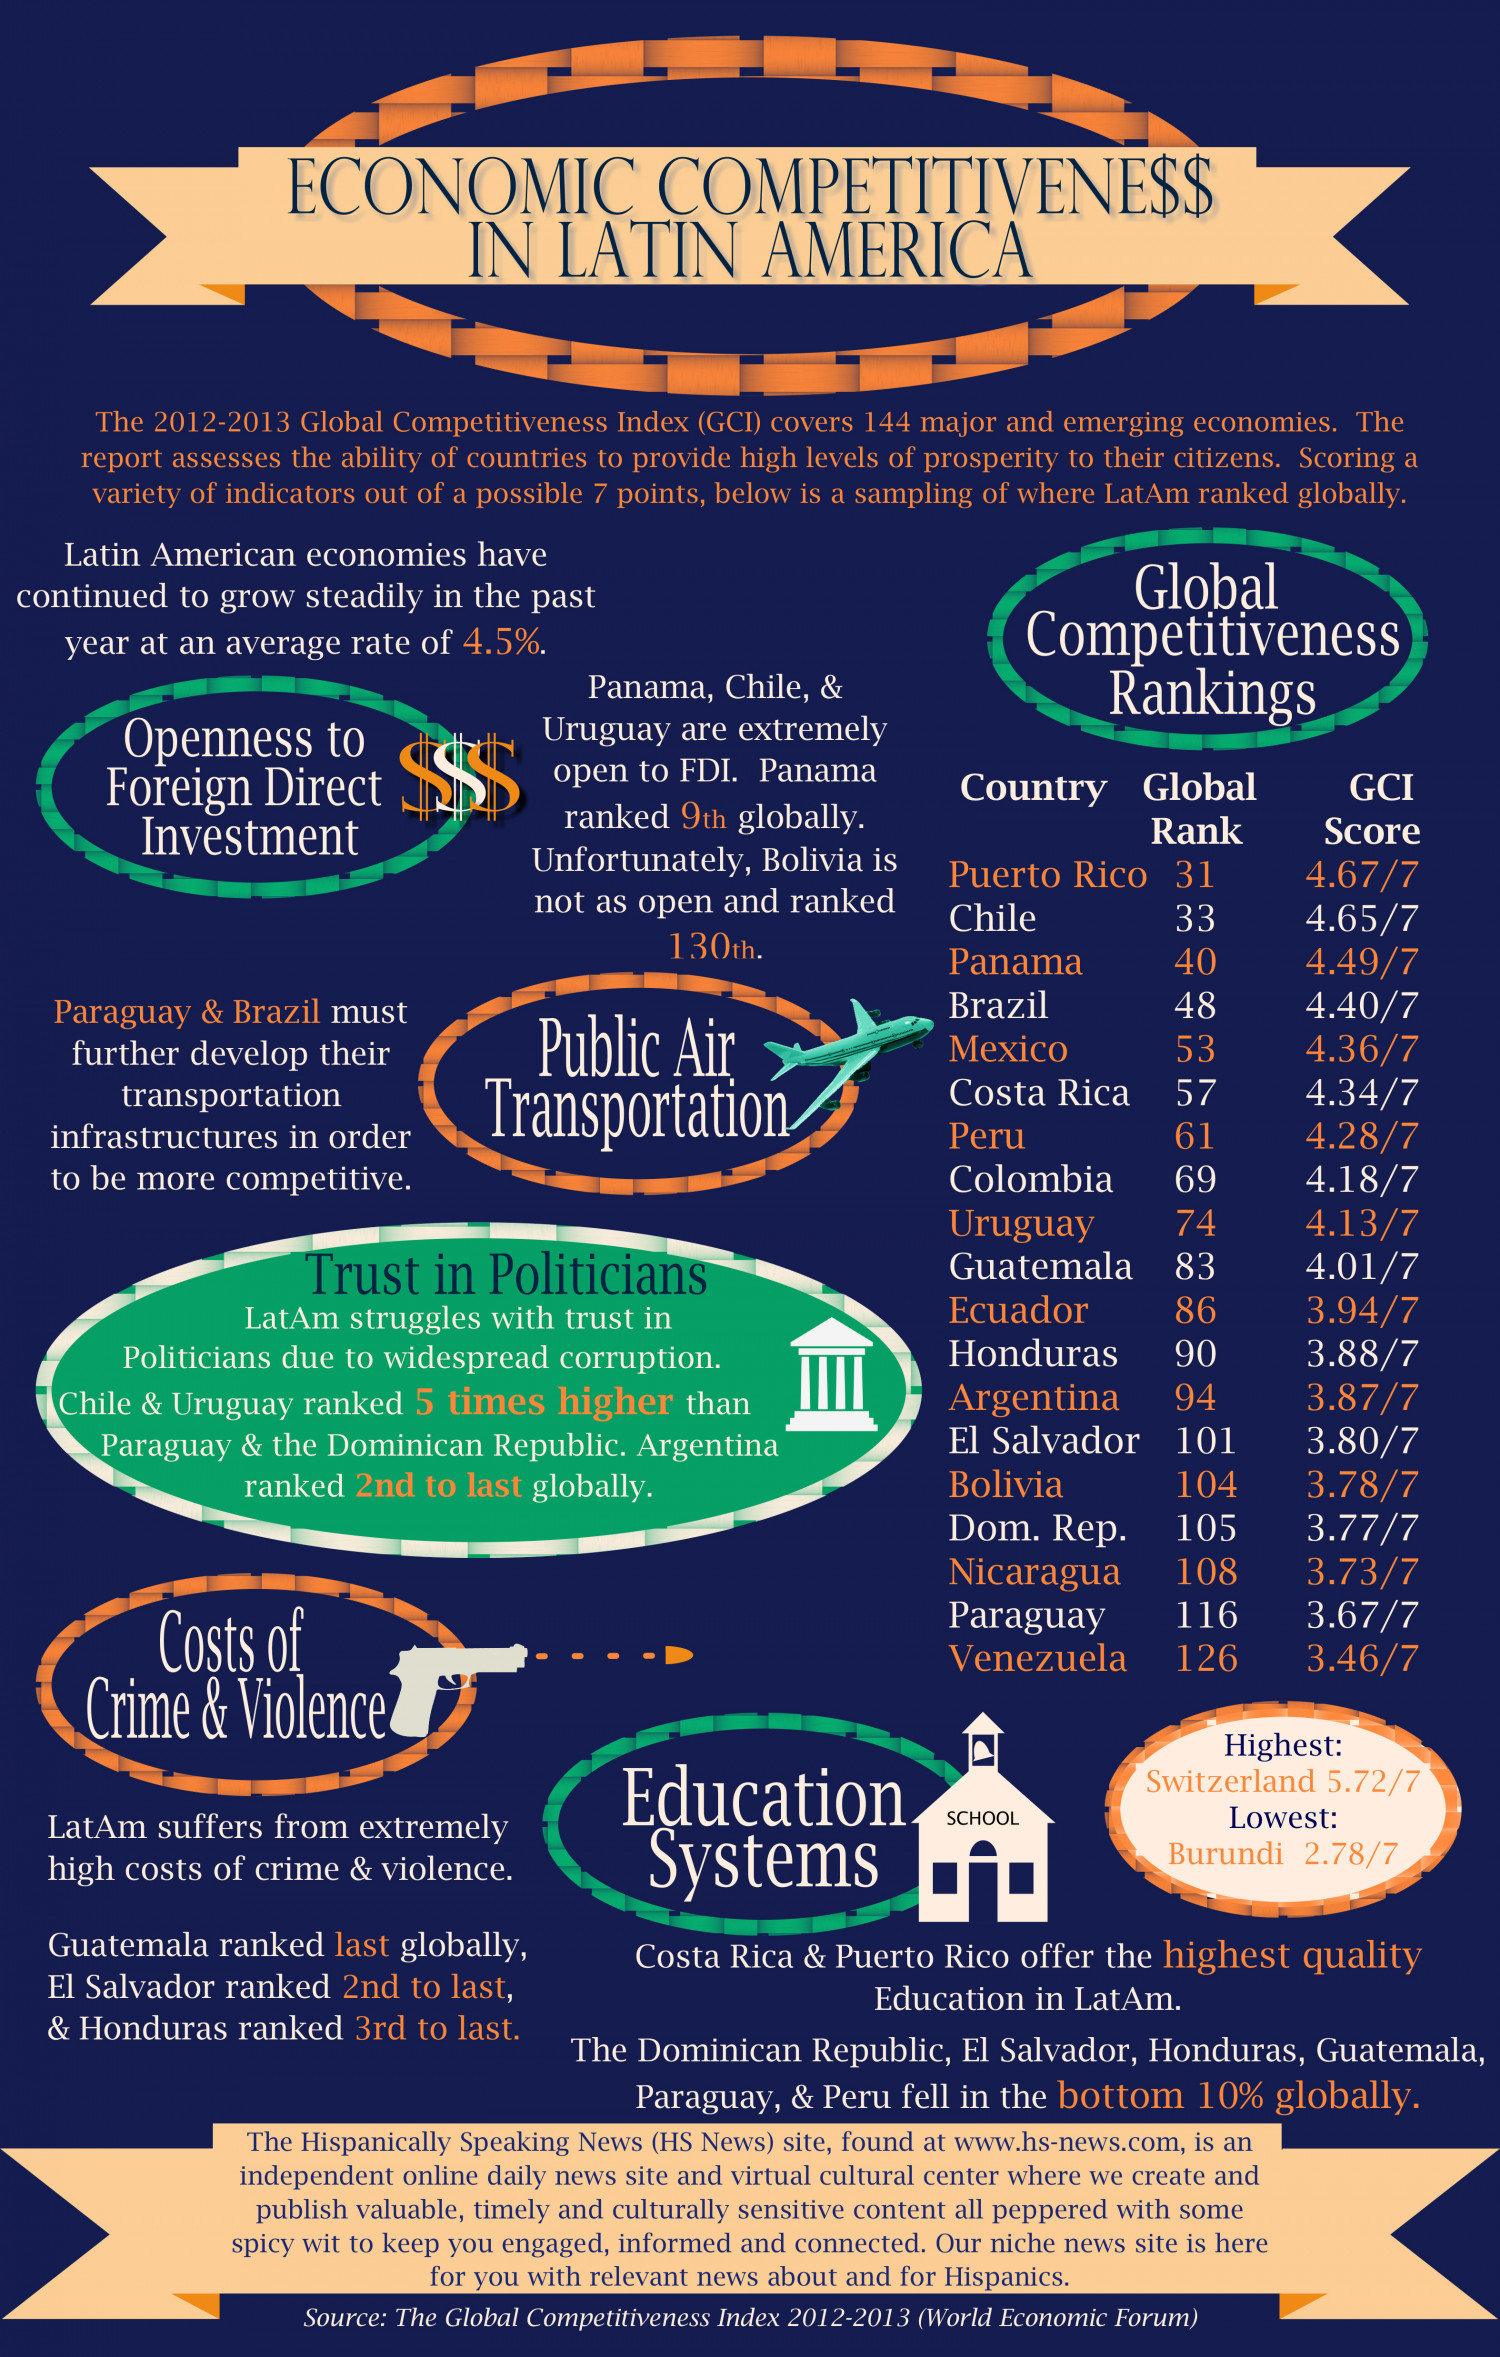 Economic Competitiveness in Latin America Infographic